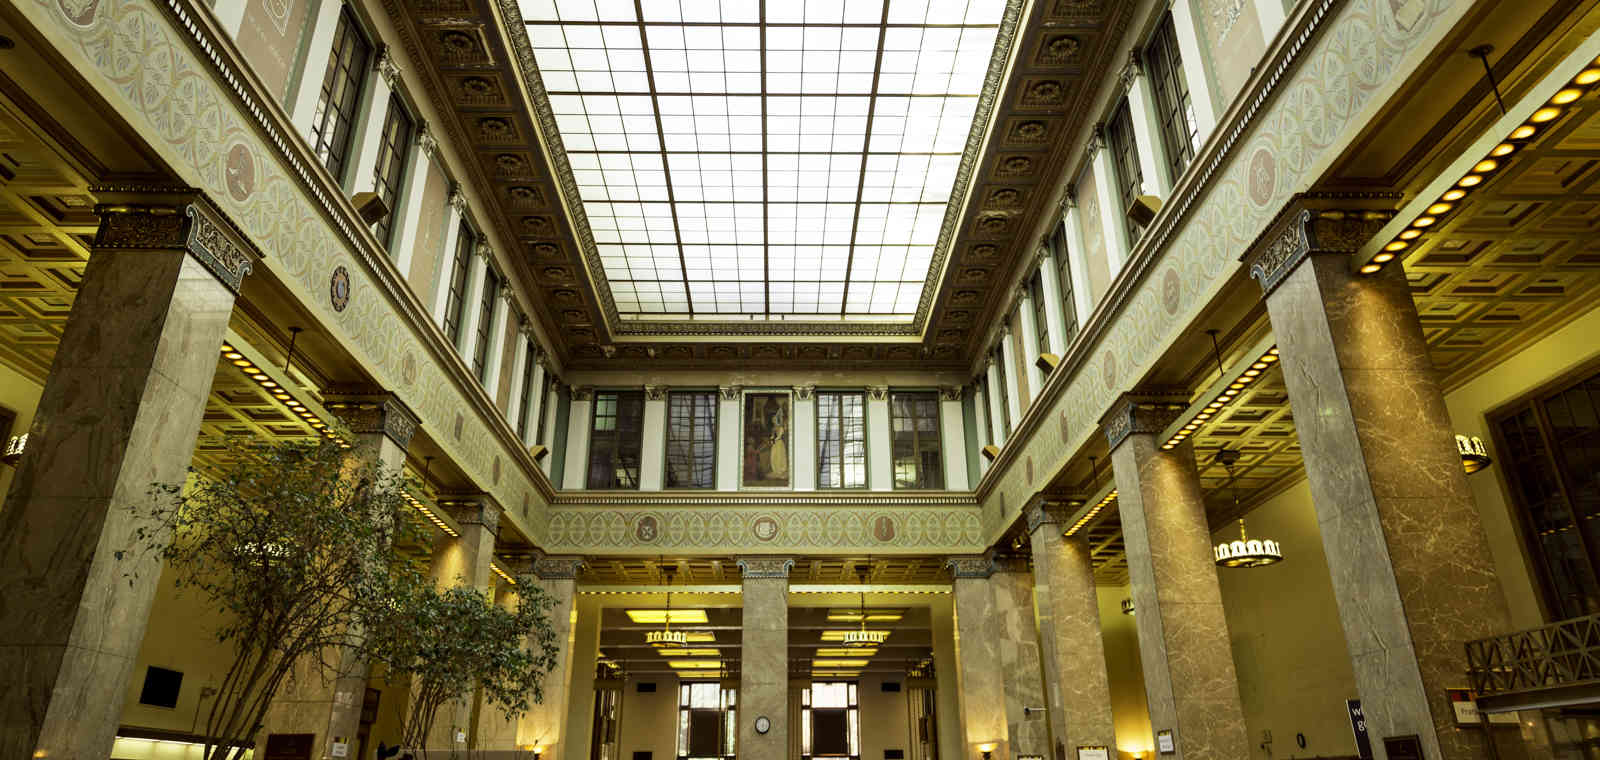 Peabody Library in Baltimore